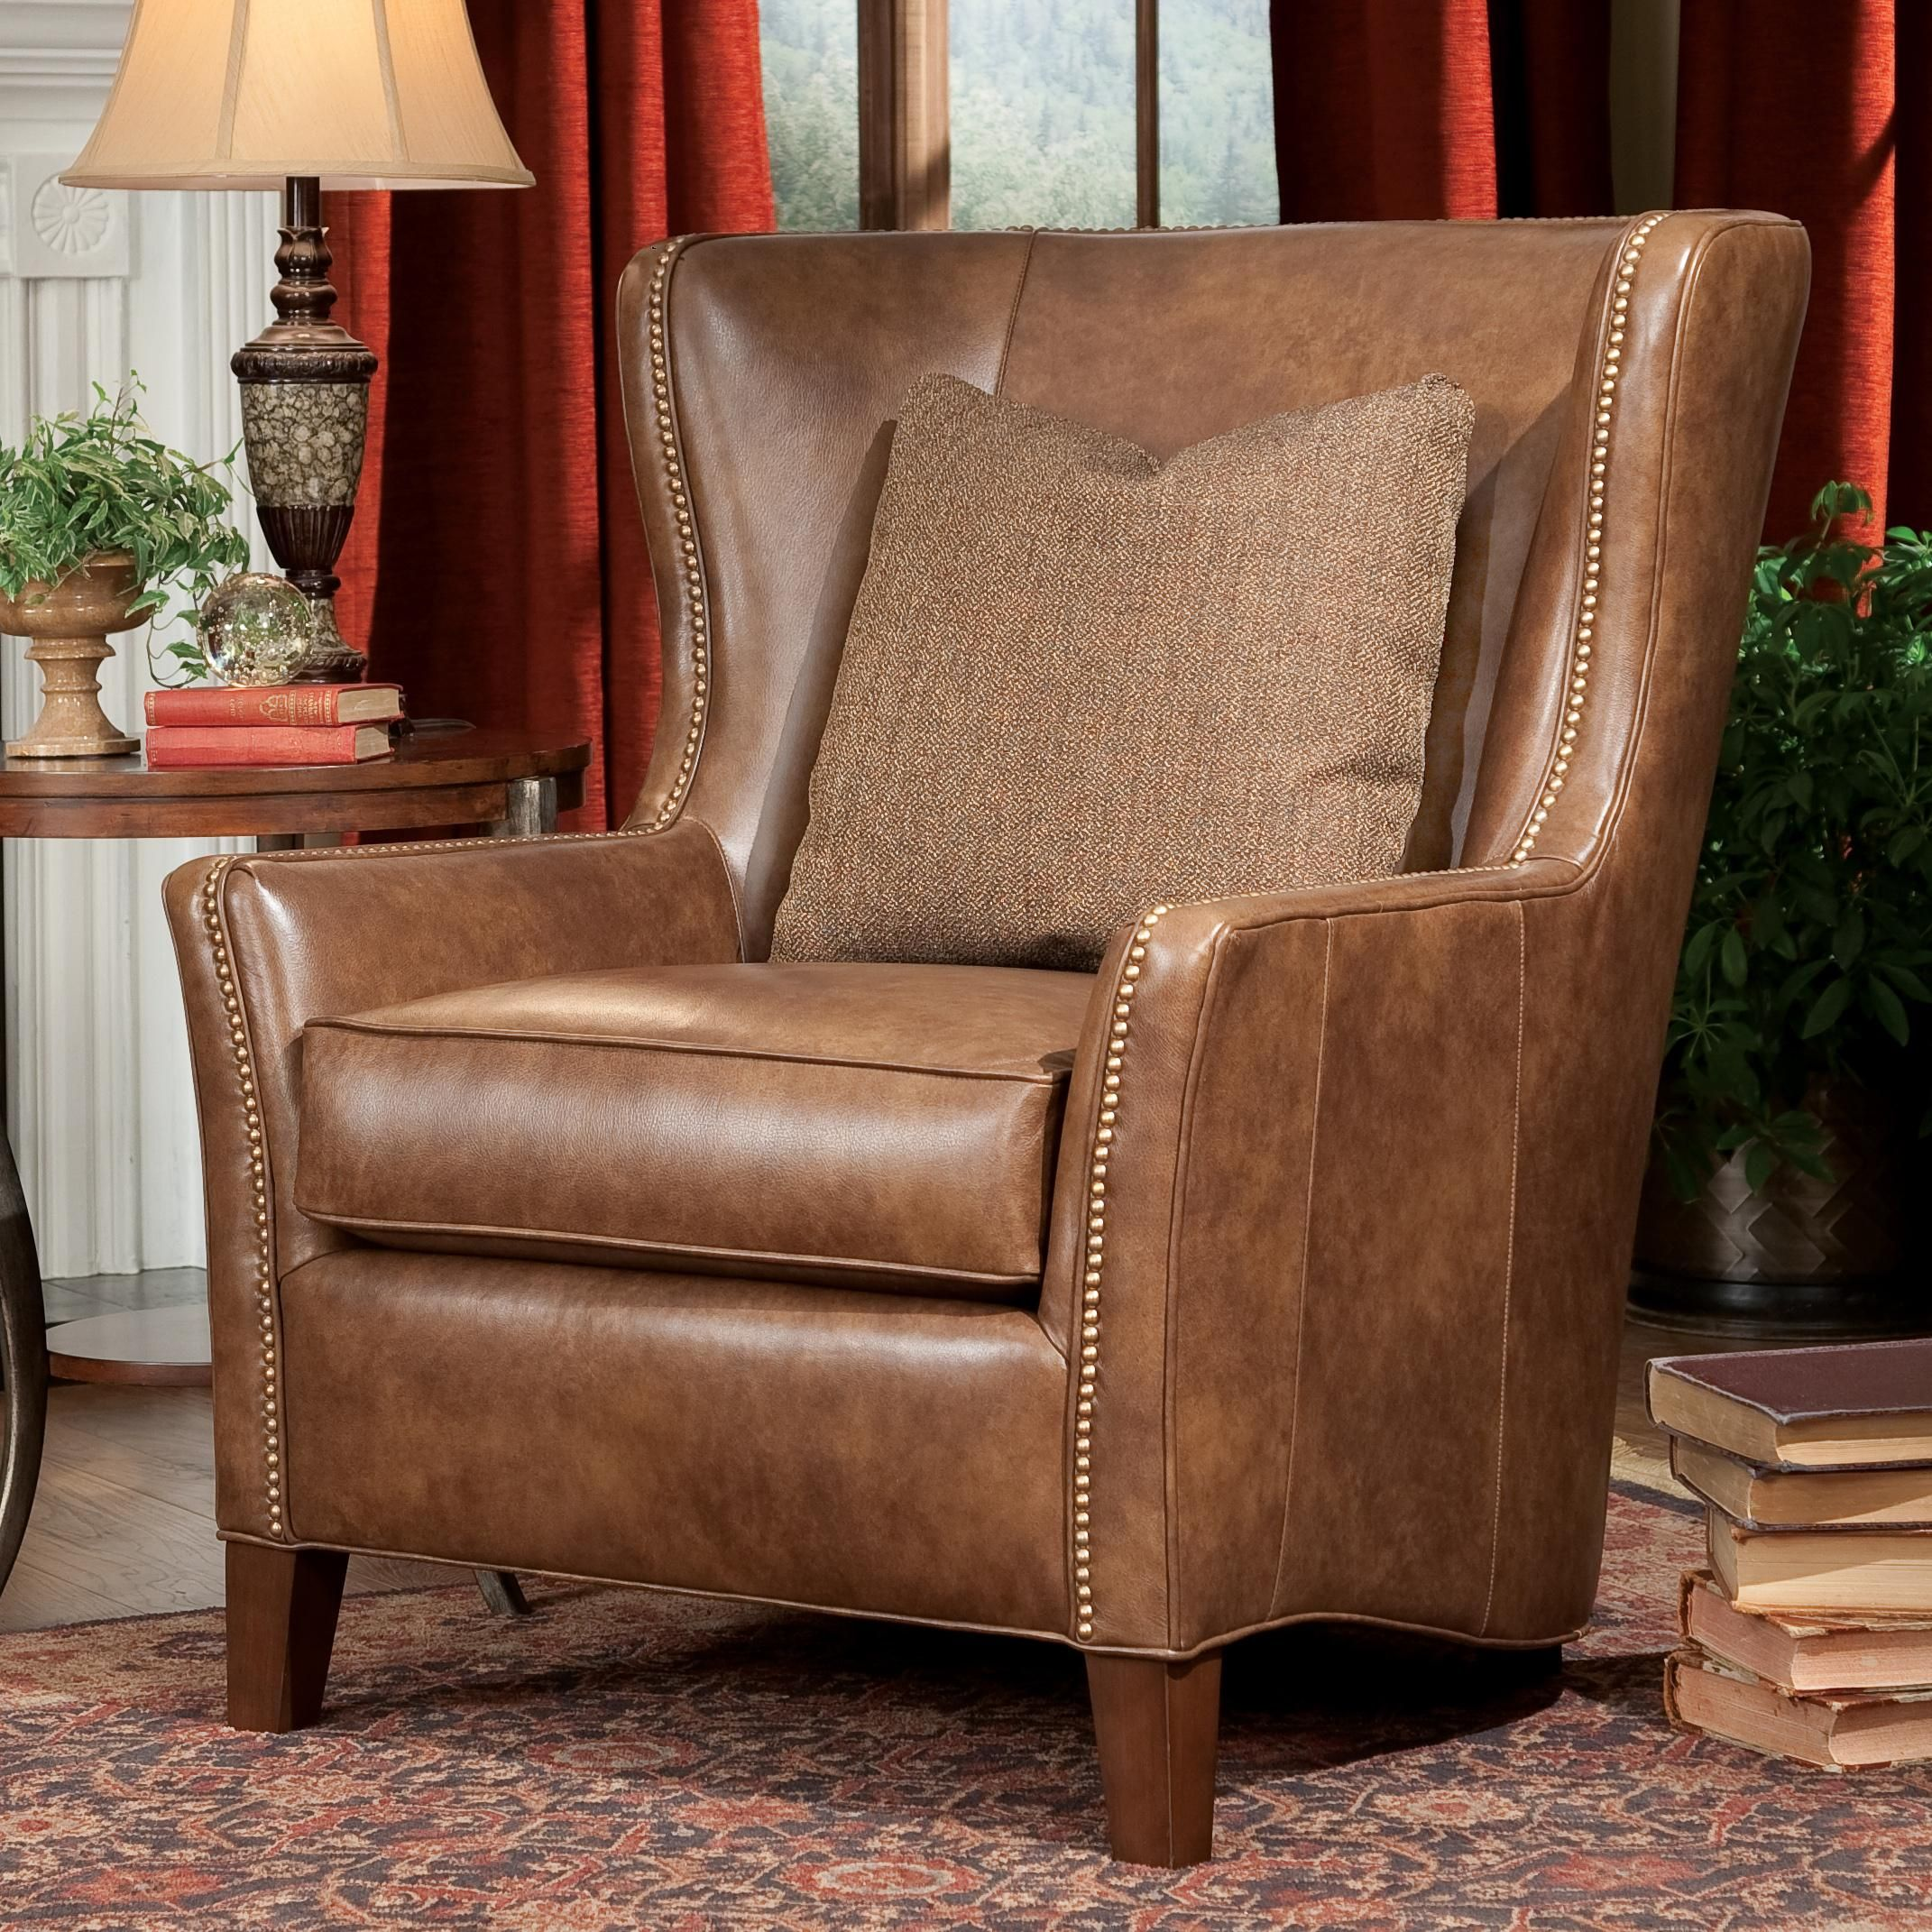 High Quality Upholstered Wingback Chair